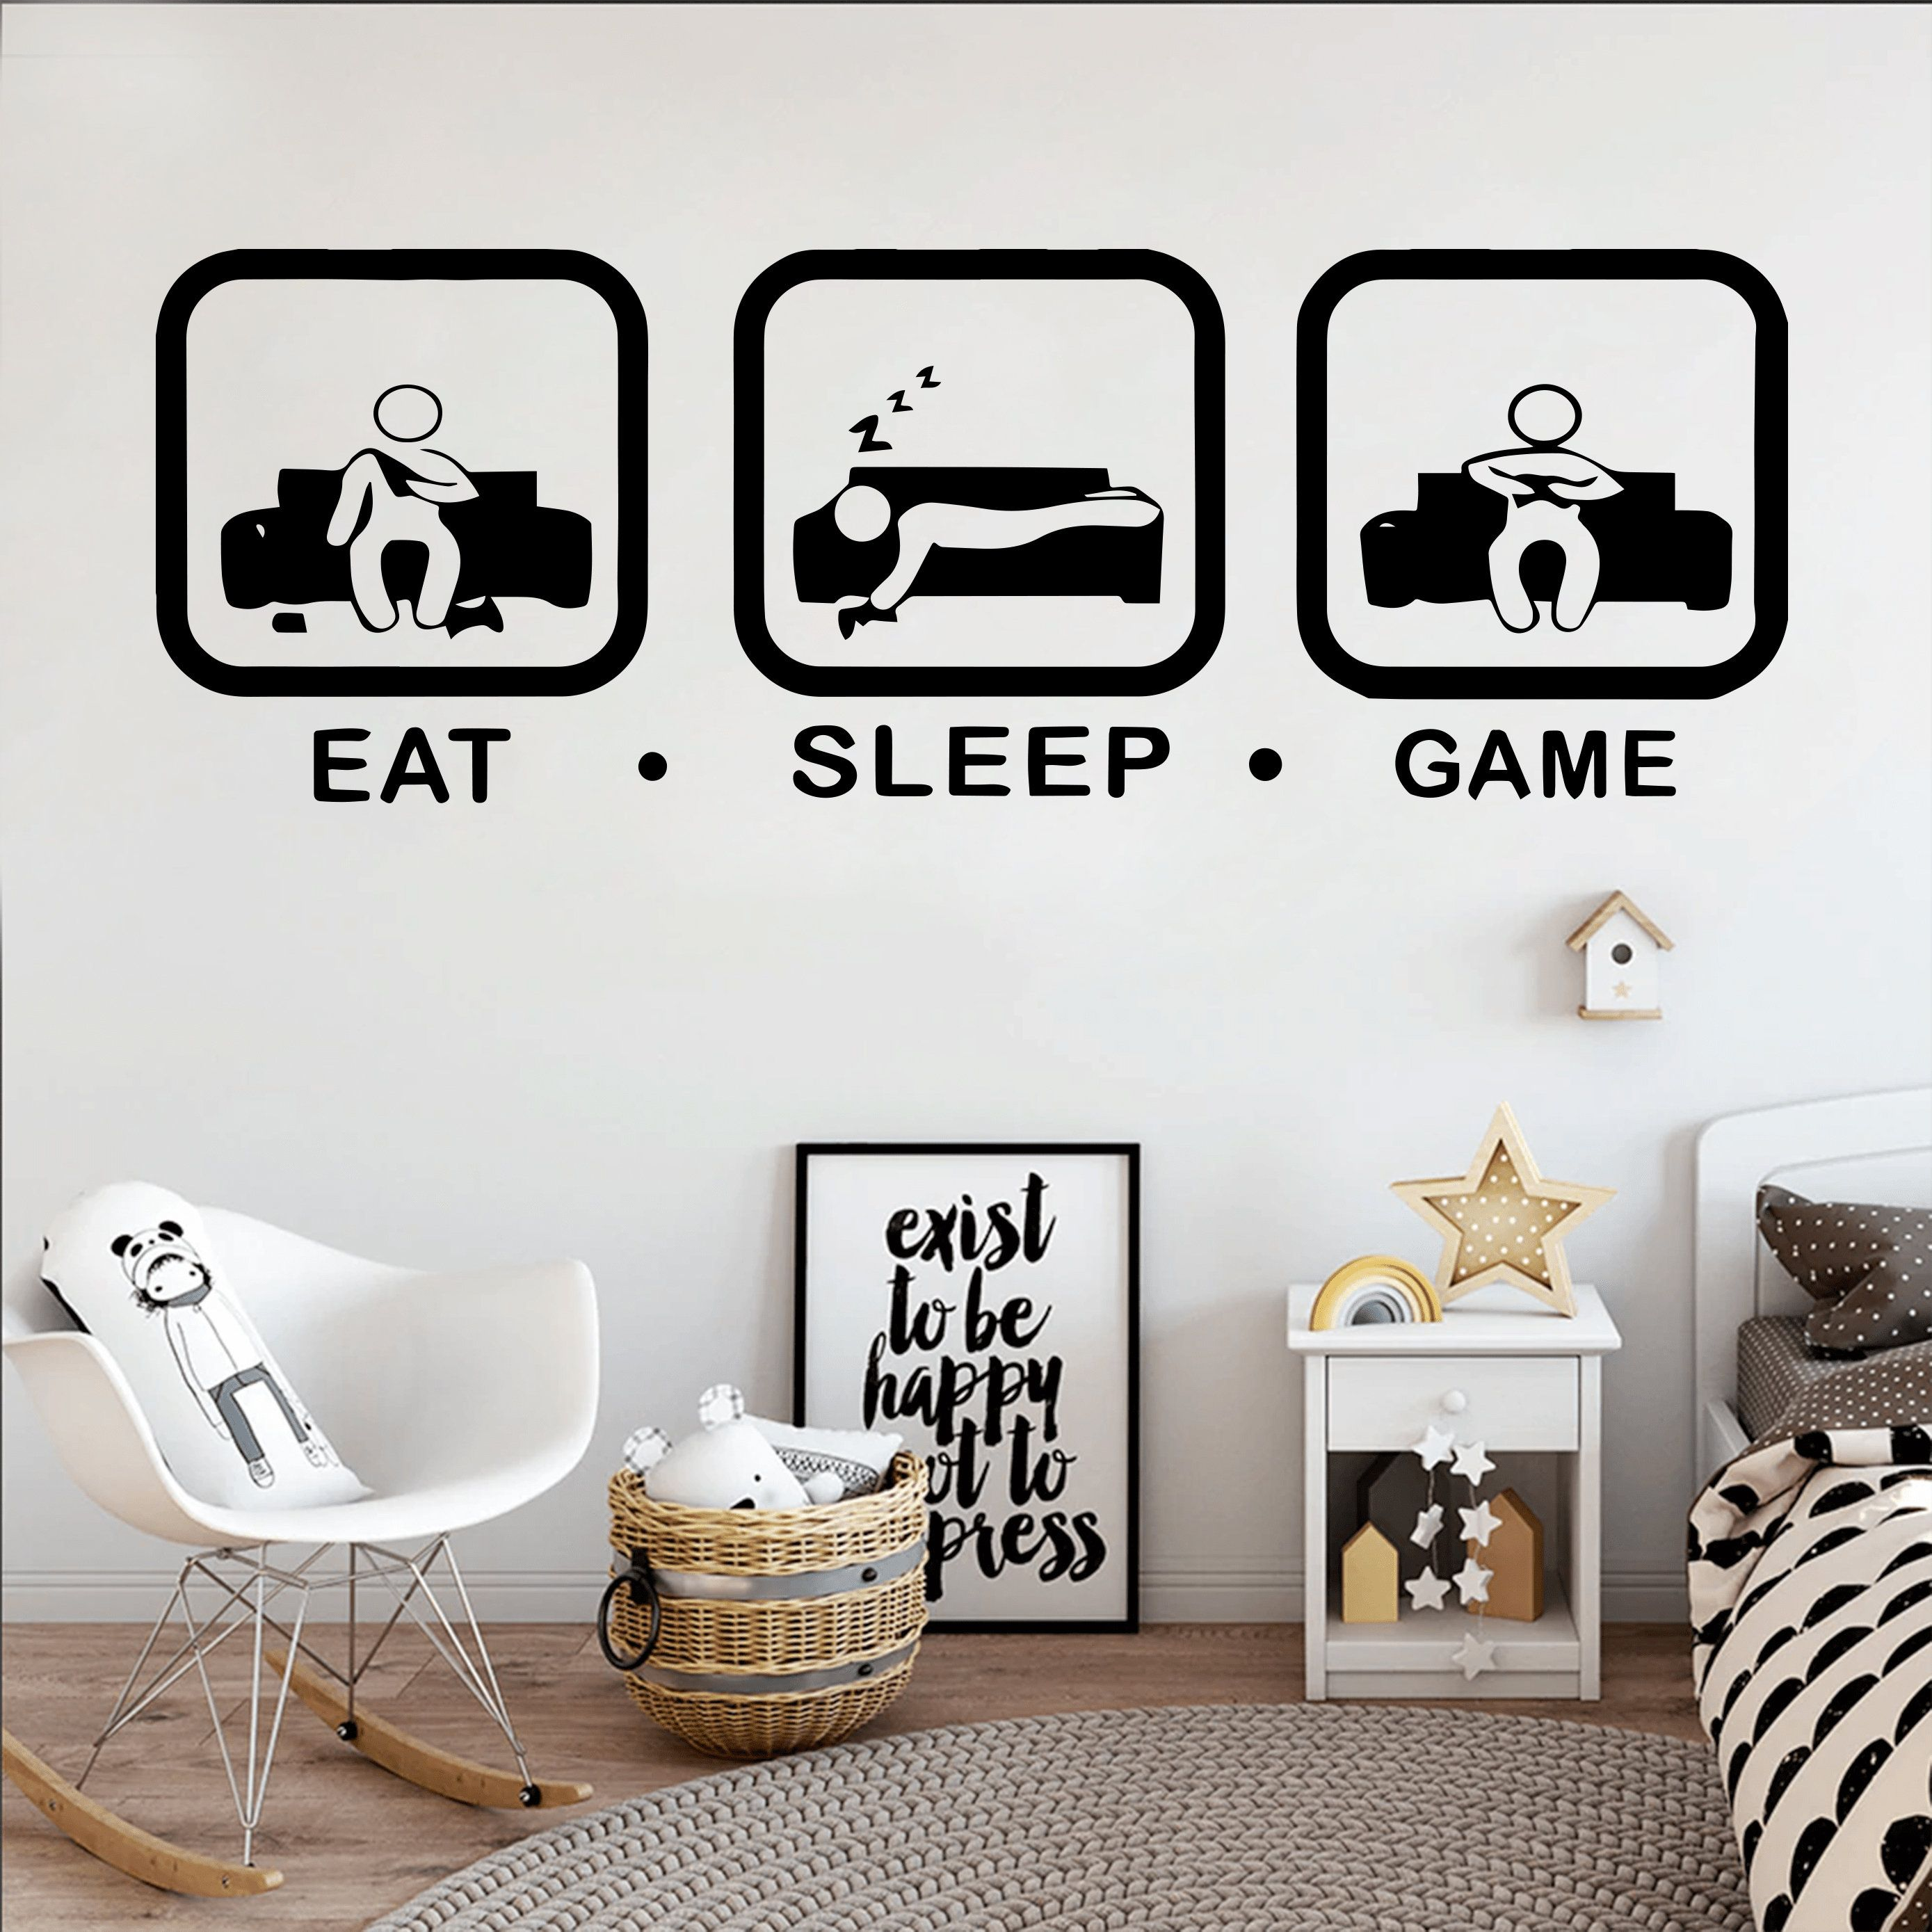 Gamer Wall Decor Custom Controller Decal Video Game Girl Boy Room Gifts Him Bedroom Gamer Dad Life Vinyl Wall Art Decals Kids Stickers 161er Vinyl Wall Art Decals Decal Wall Art